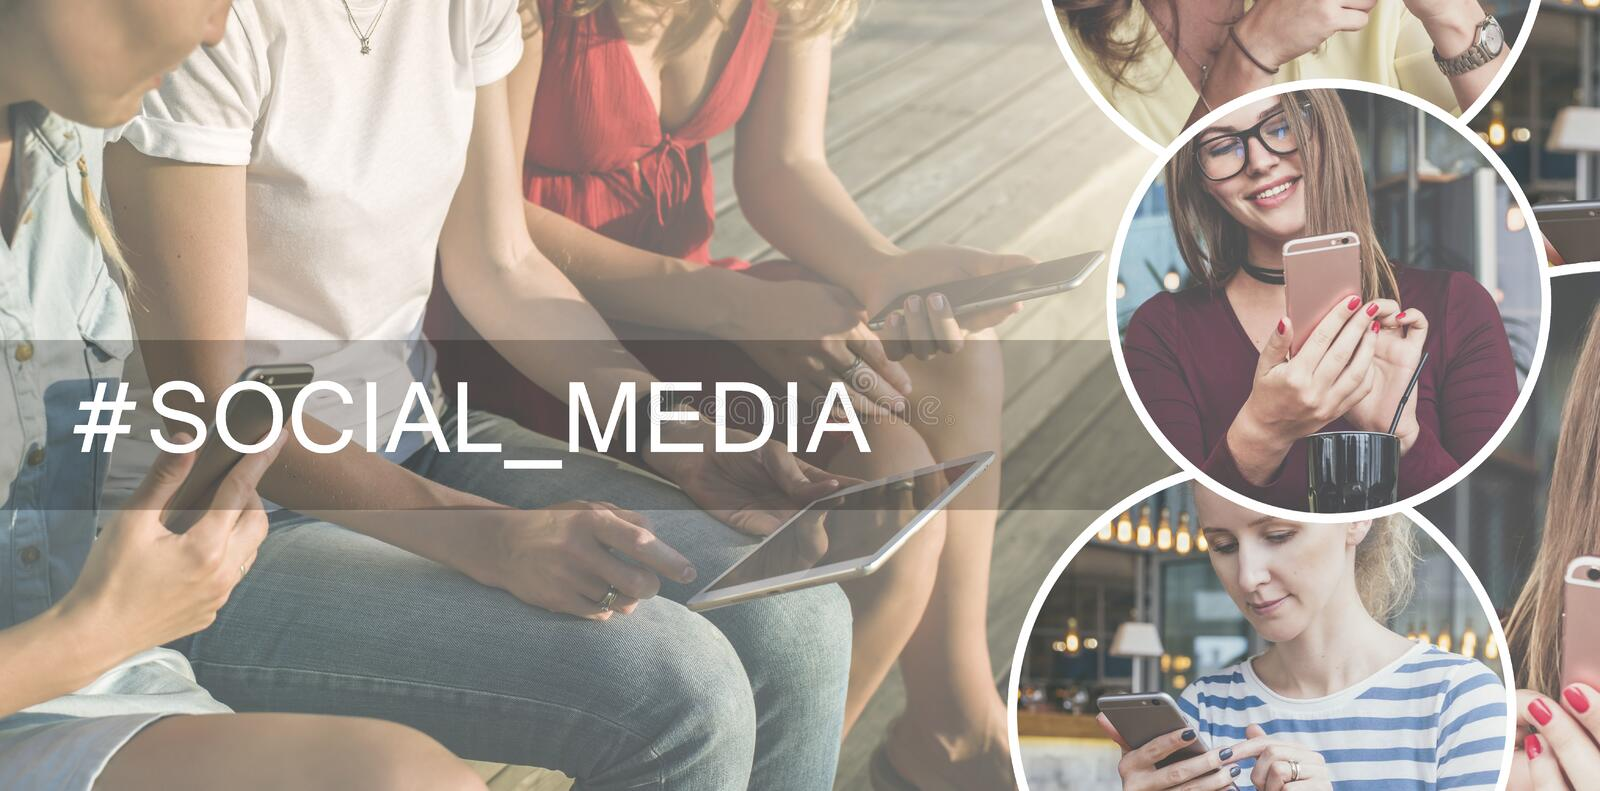 Social media.Summer day. Close-up of smart phones and a digital tablet in the hands of young women sitting outdoors. royalty free stock images